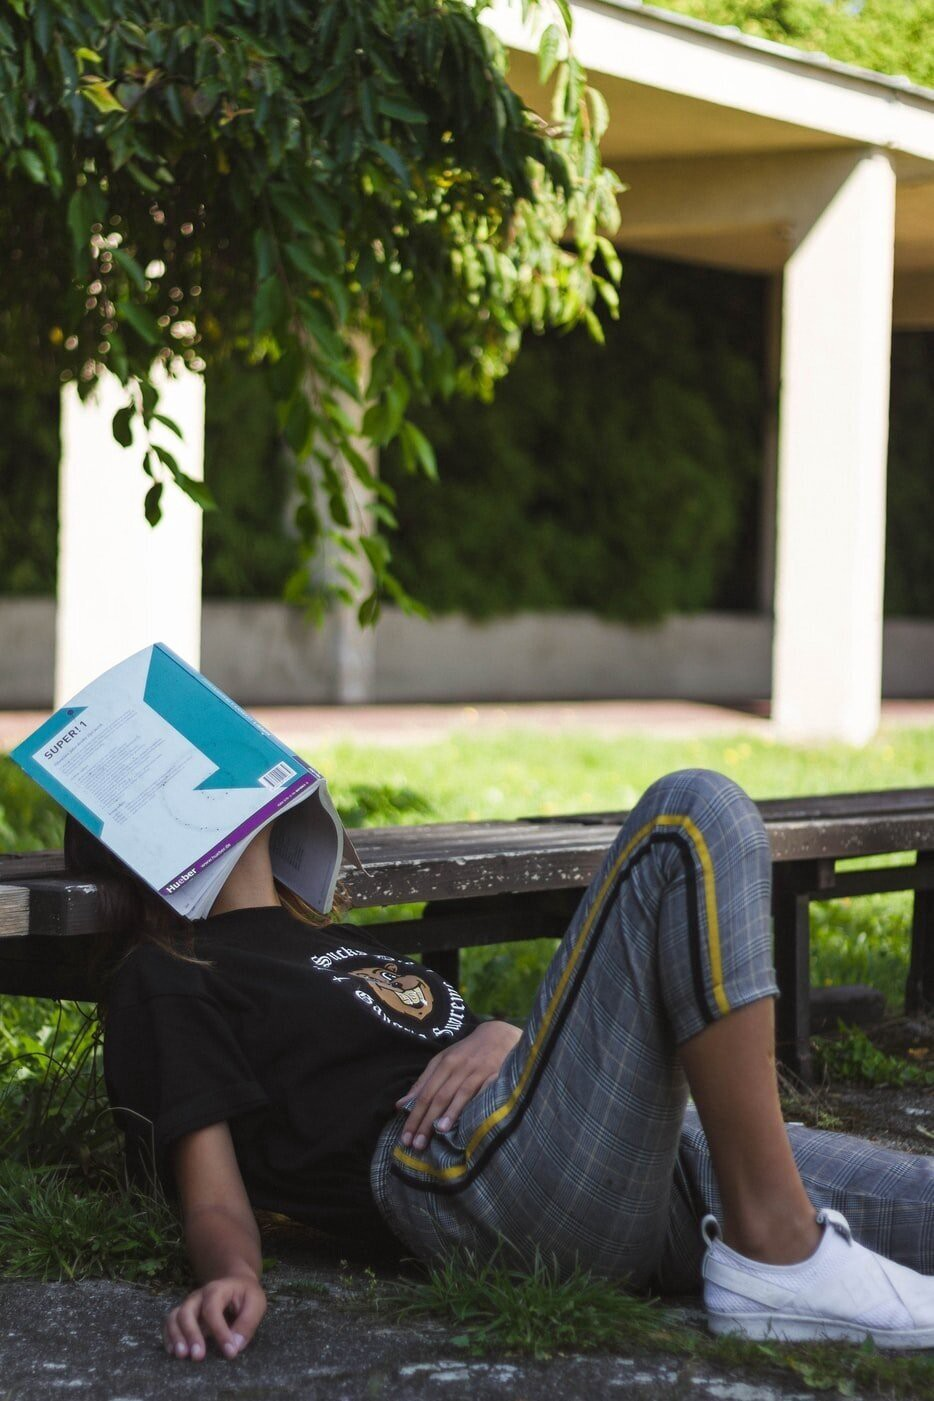 A student sleeps in the grass with a textbook folded over her face.